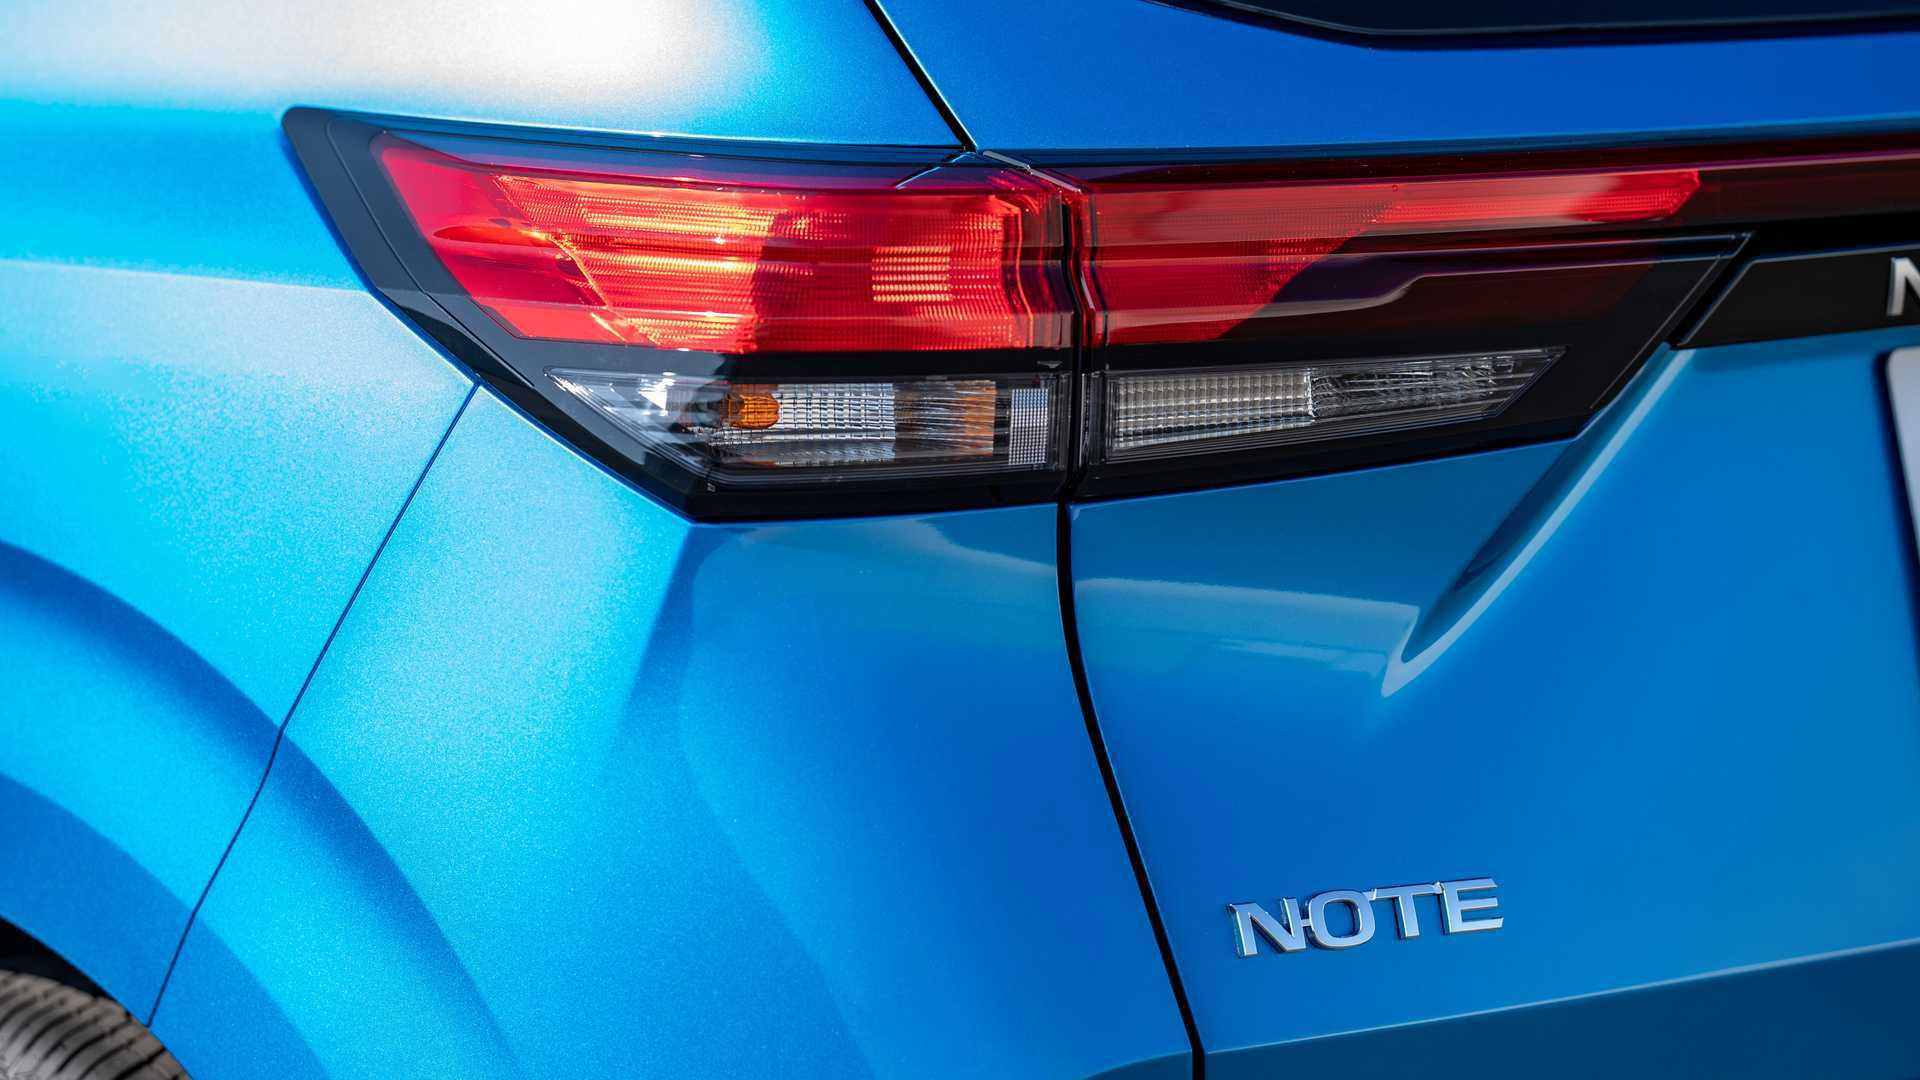 2021_Nissan_Note_0064